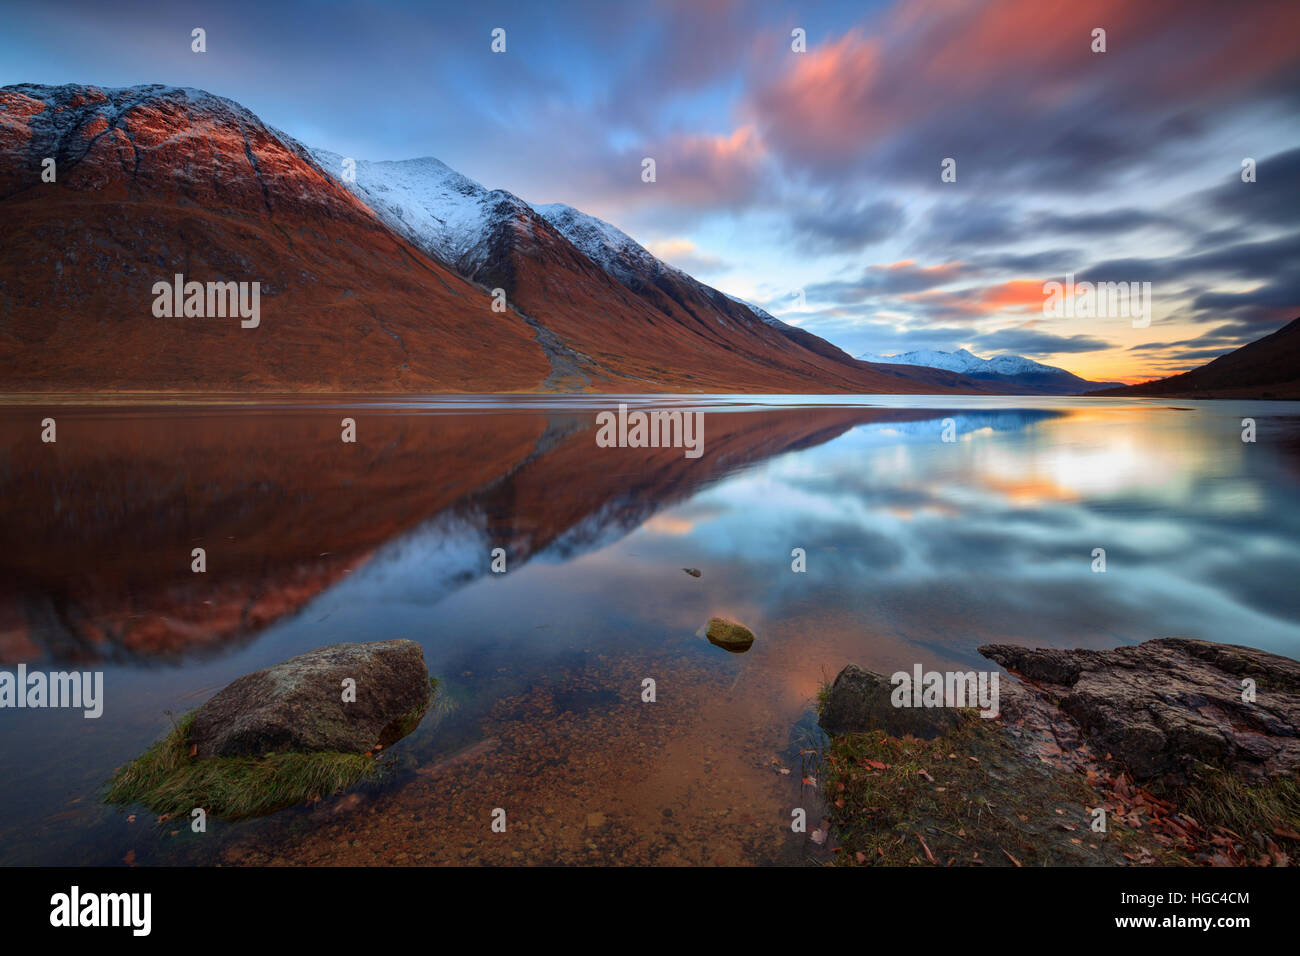 Sunset reflected in Loch Etive captured from near Gualachulain in the Scottish Highland. - Stock Image